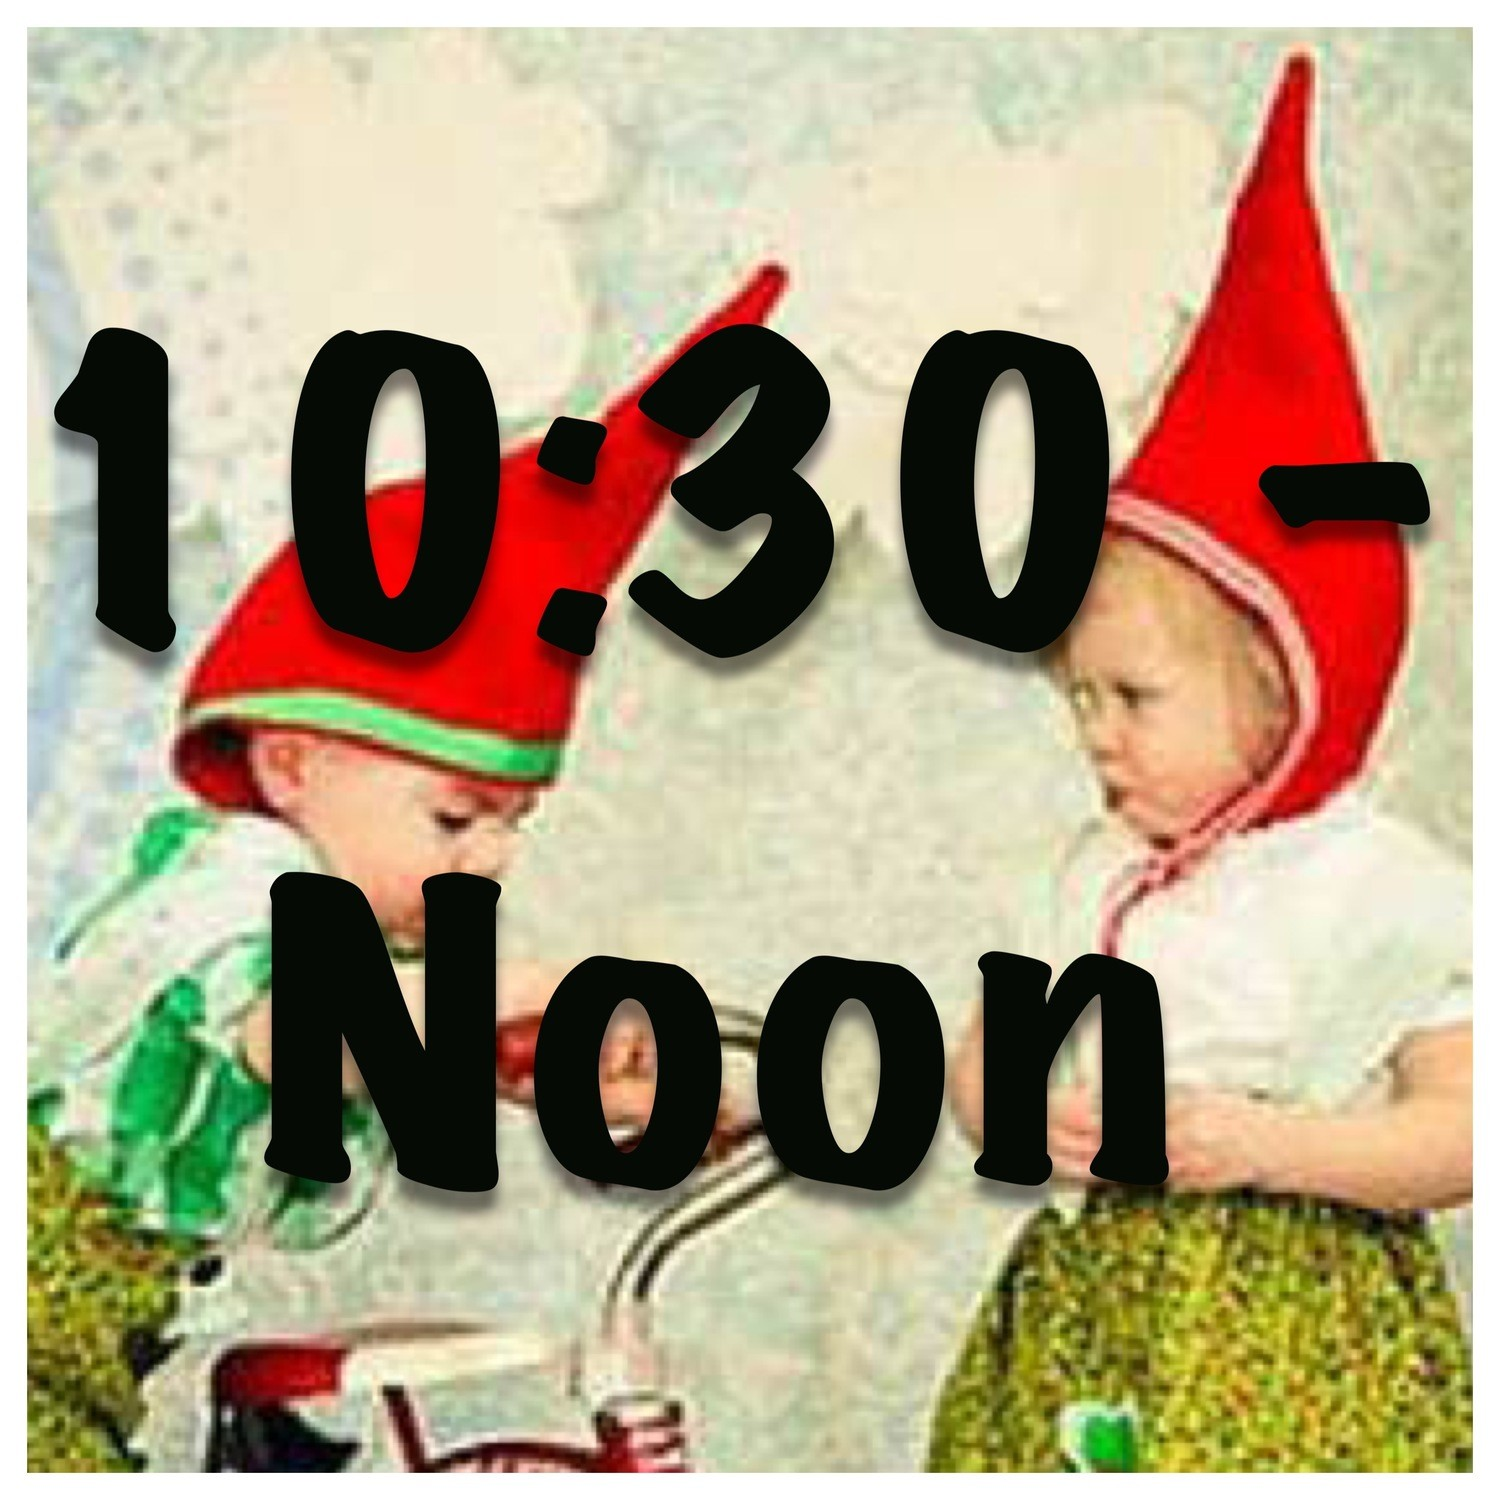 Little Gnomes Entrance Tickets 10:30am - noon